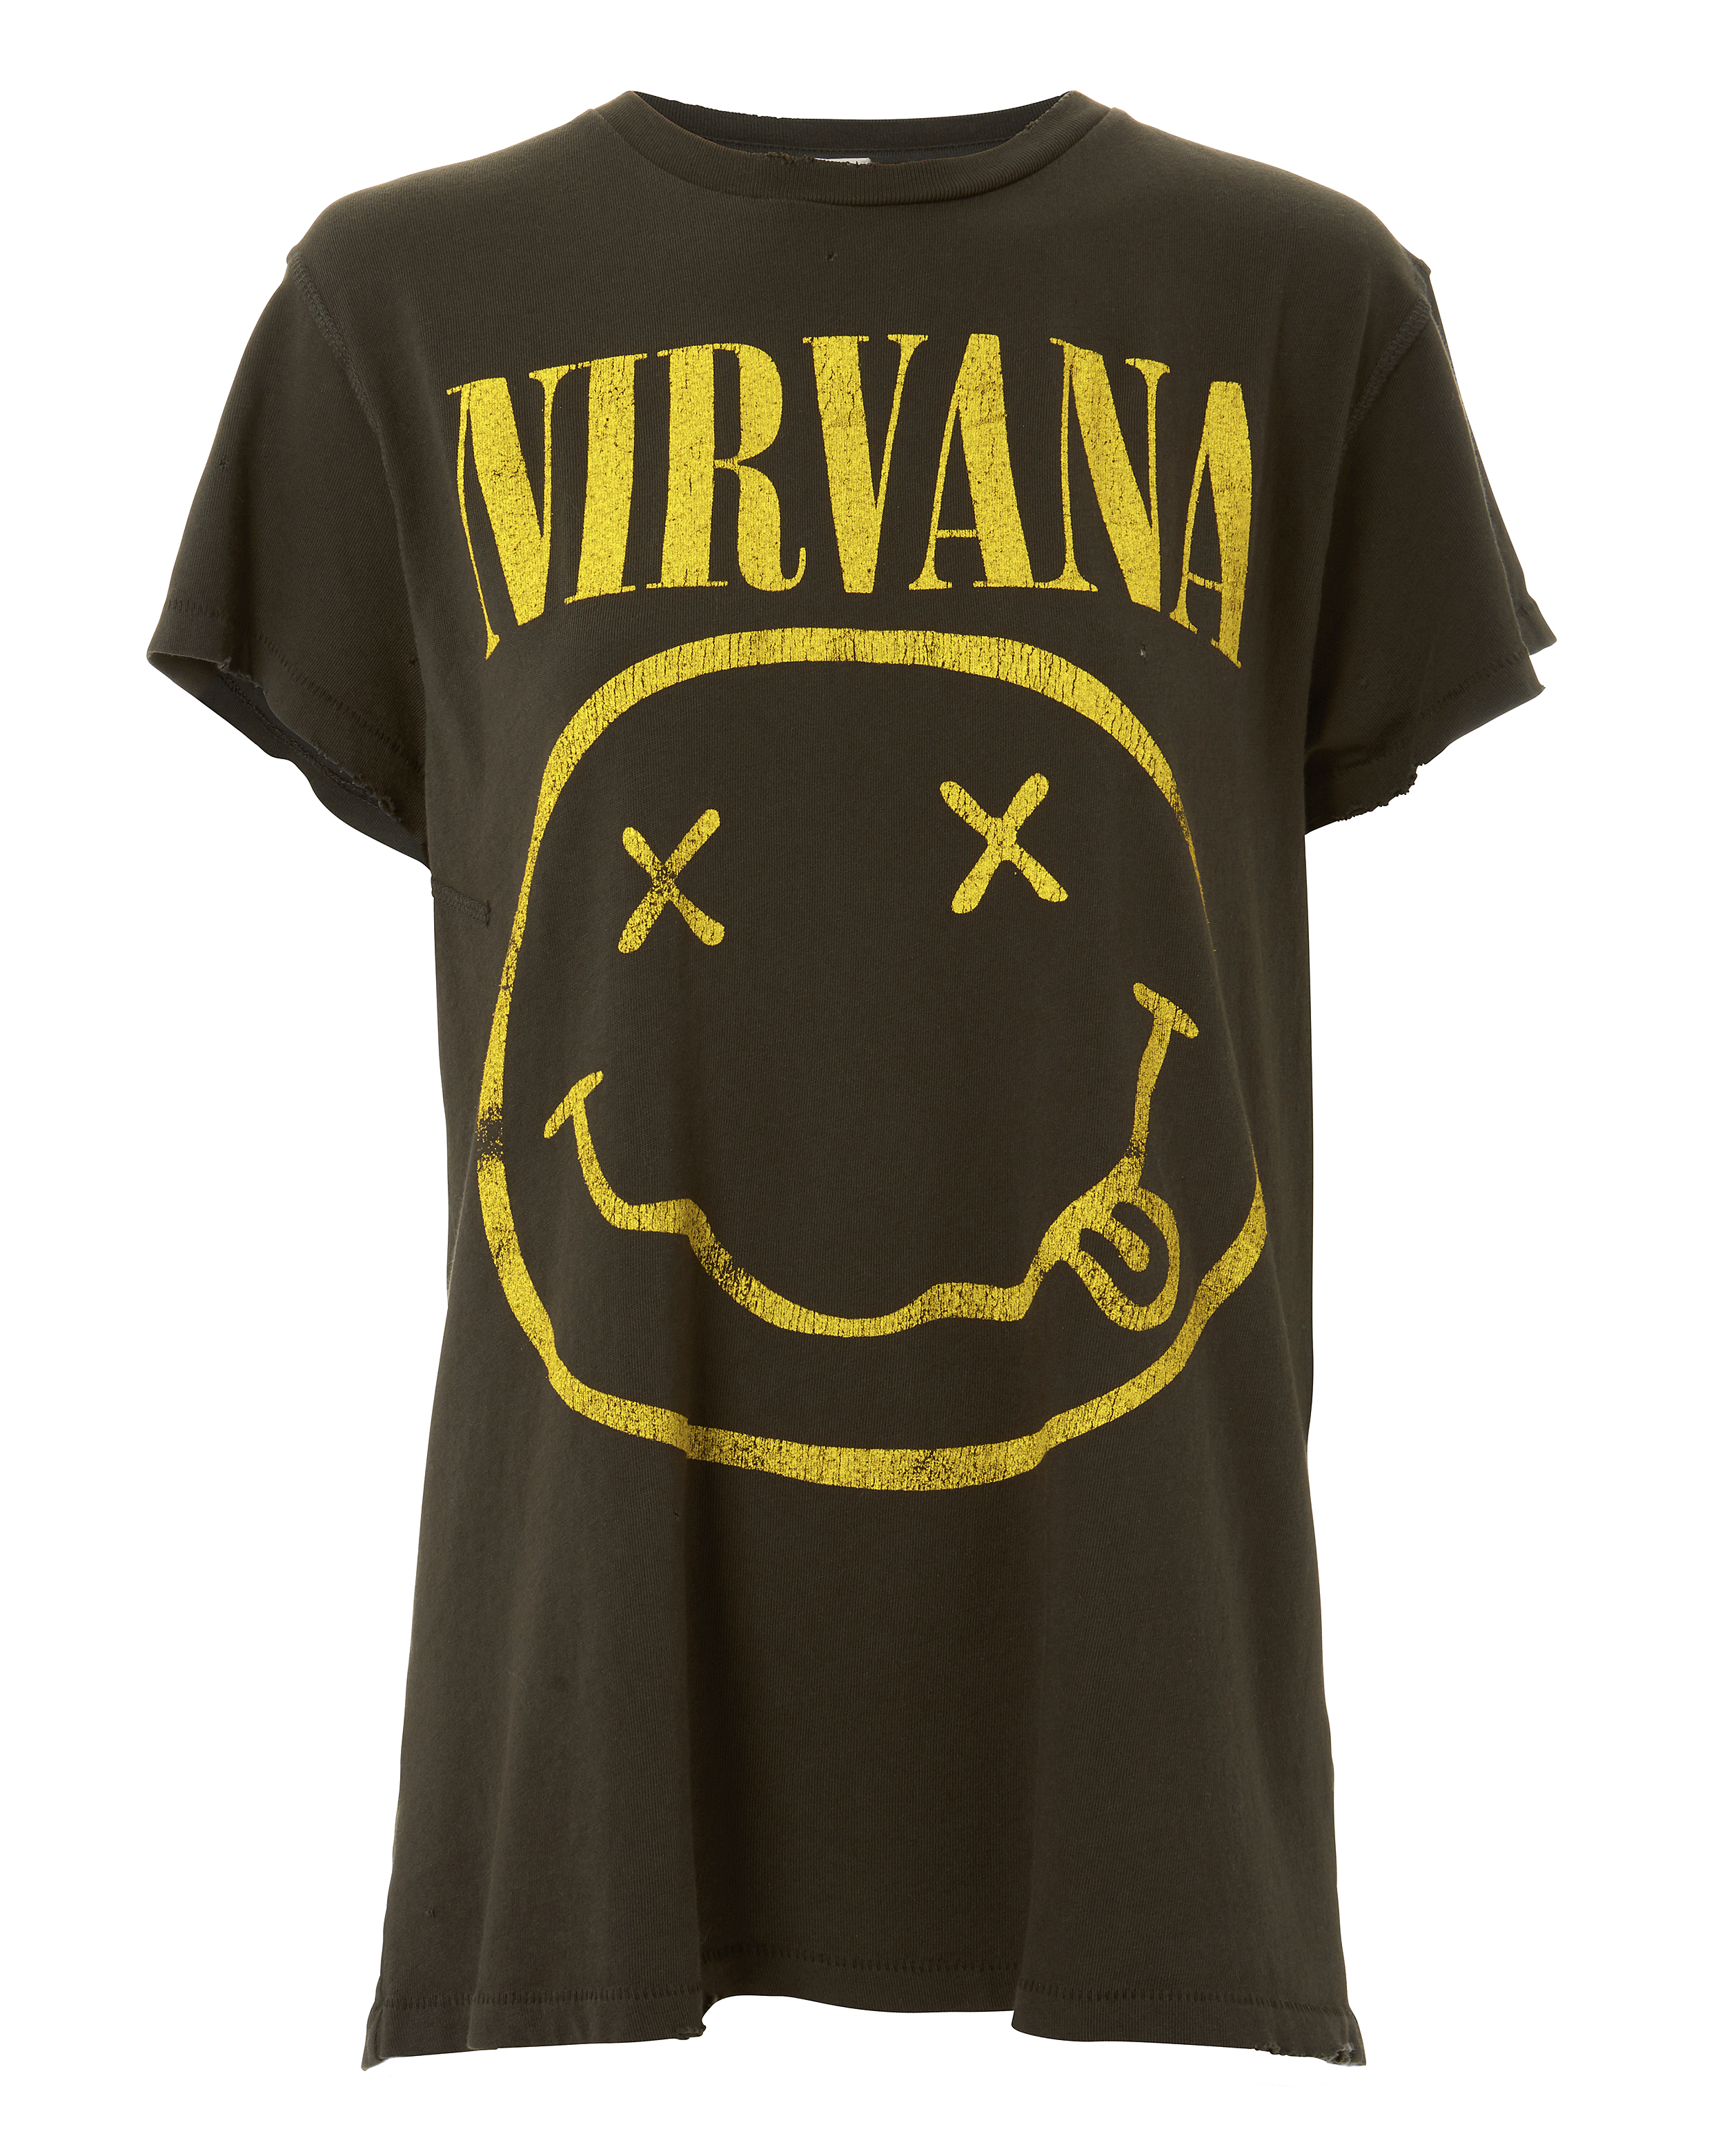 Nirvana Graphic Tee by Madeworn